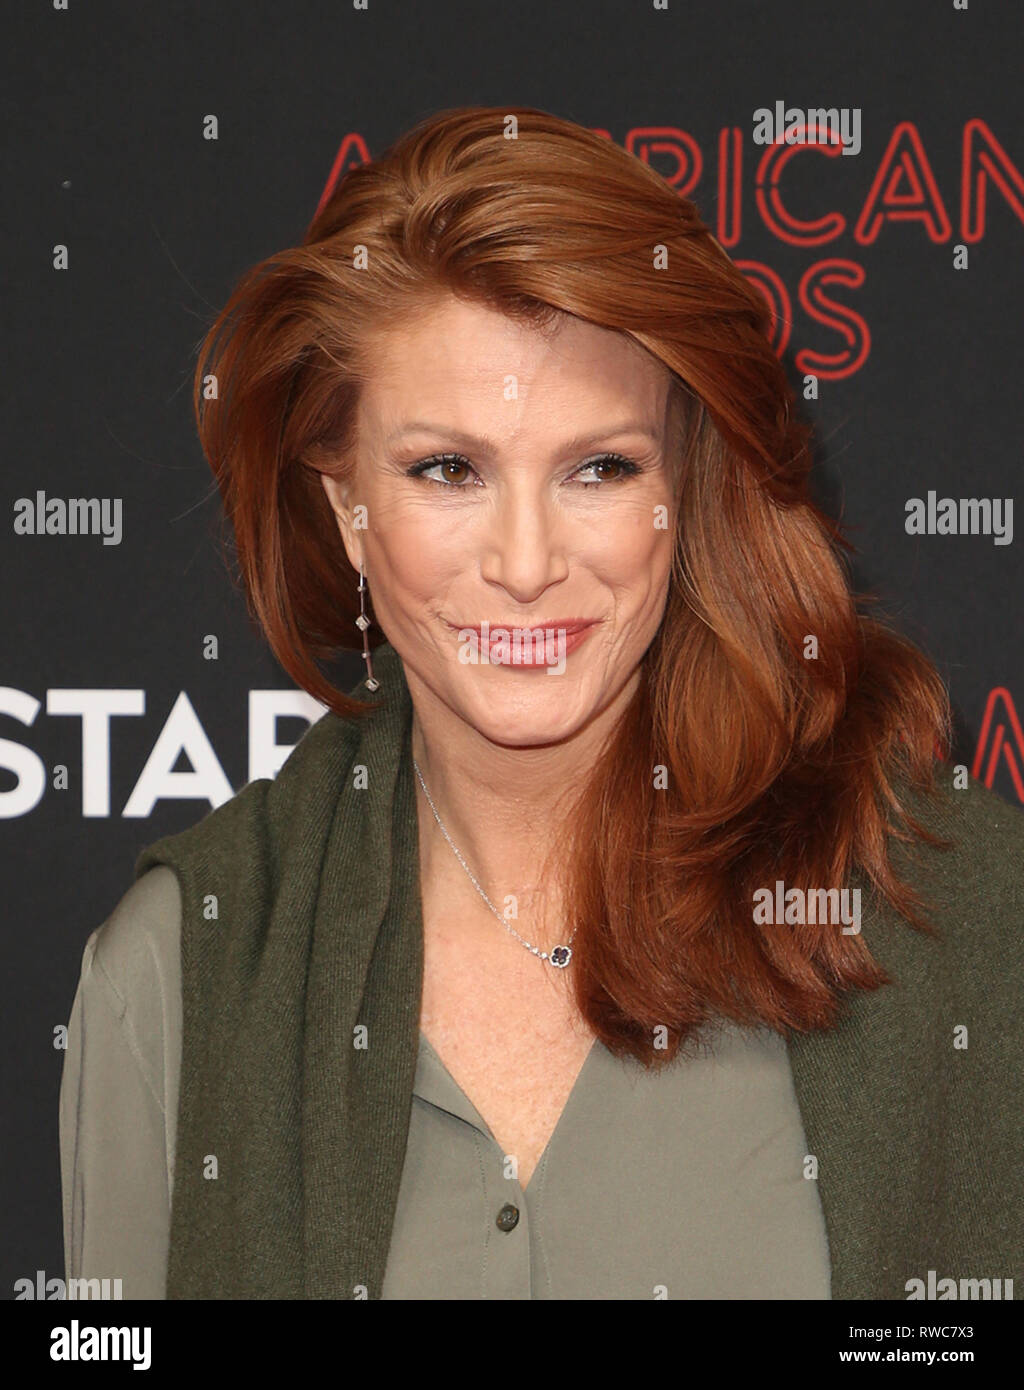 Angie Everhart Nue angie 2 stock photos & angie 2 stock images - page 3 - alamy